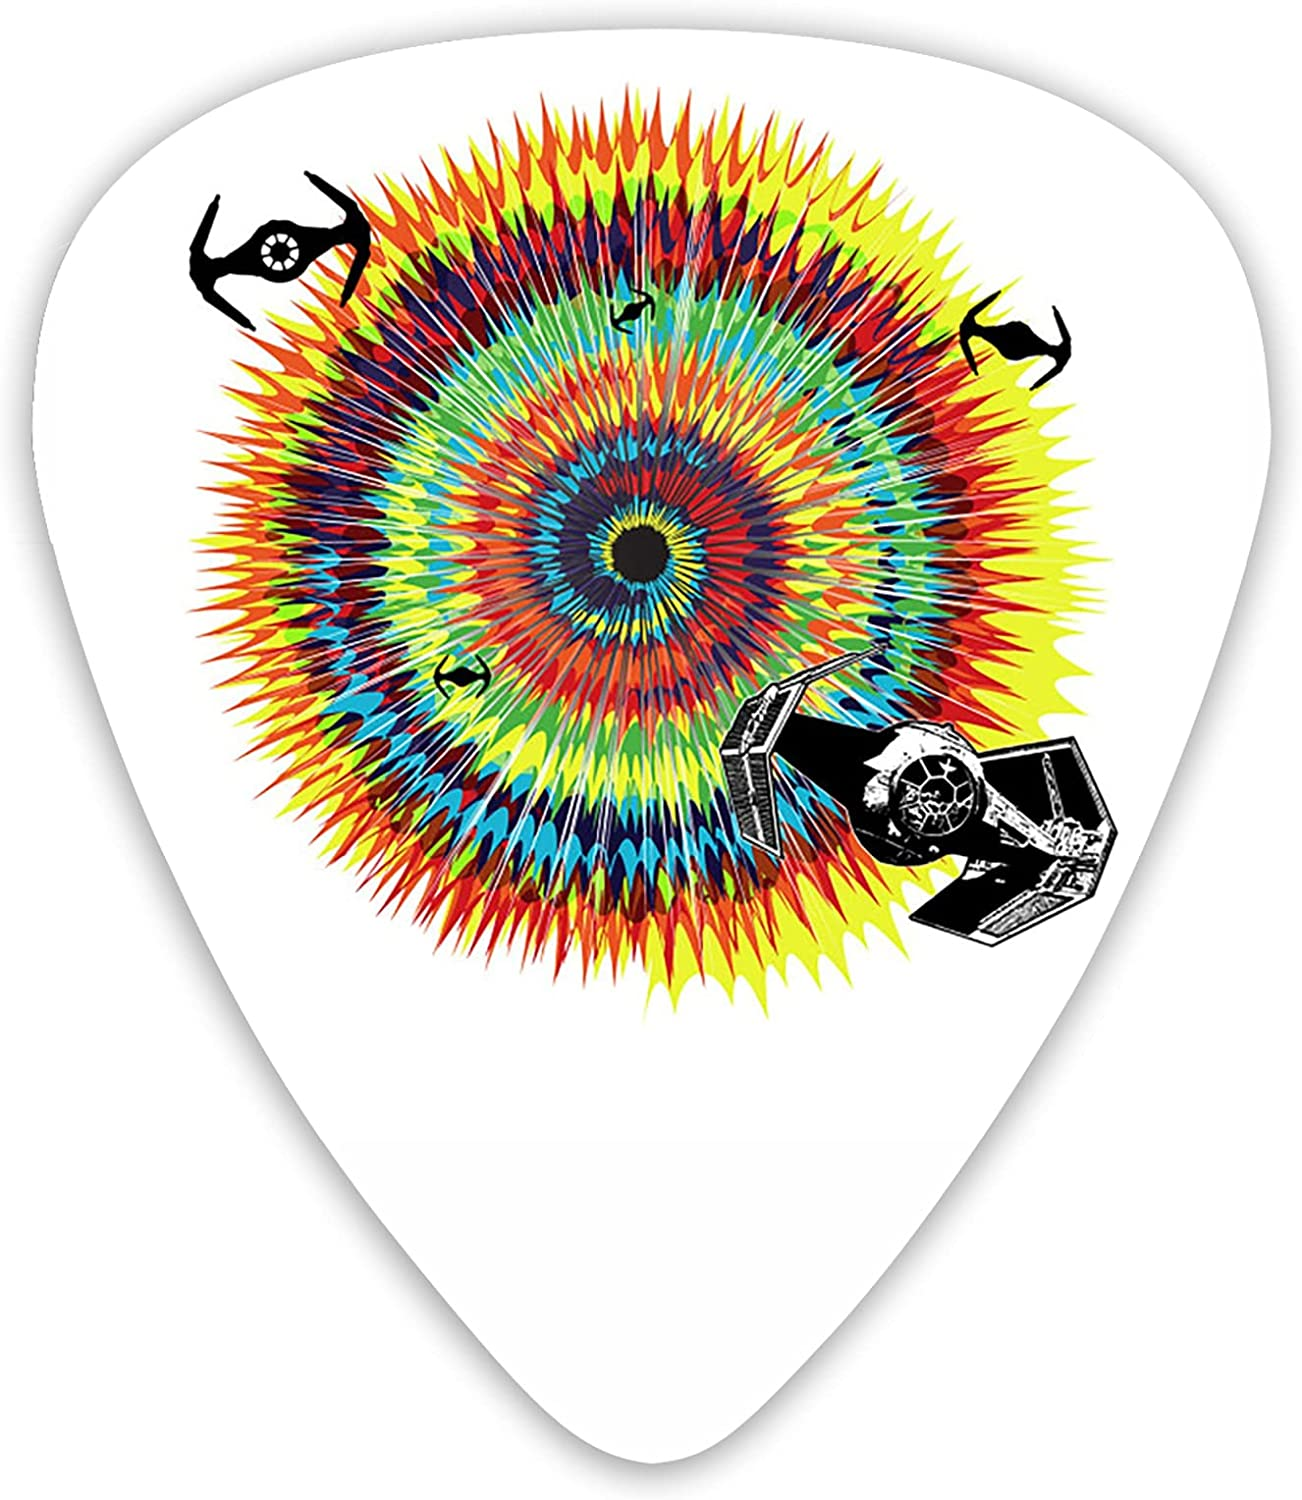 AYTOYY Tie Washington Mall Dye Guitar Picks 12-Pack For Electr safety Acoustic